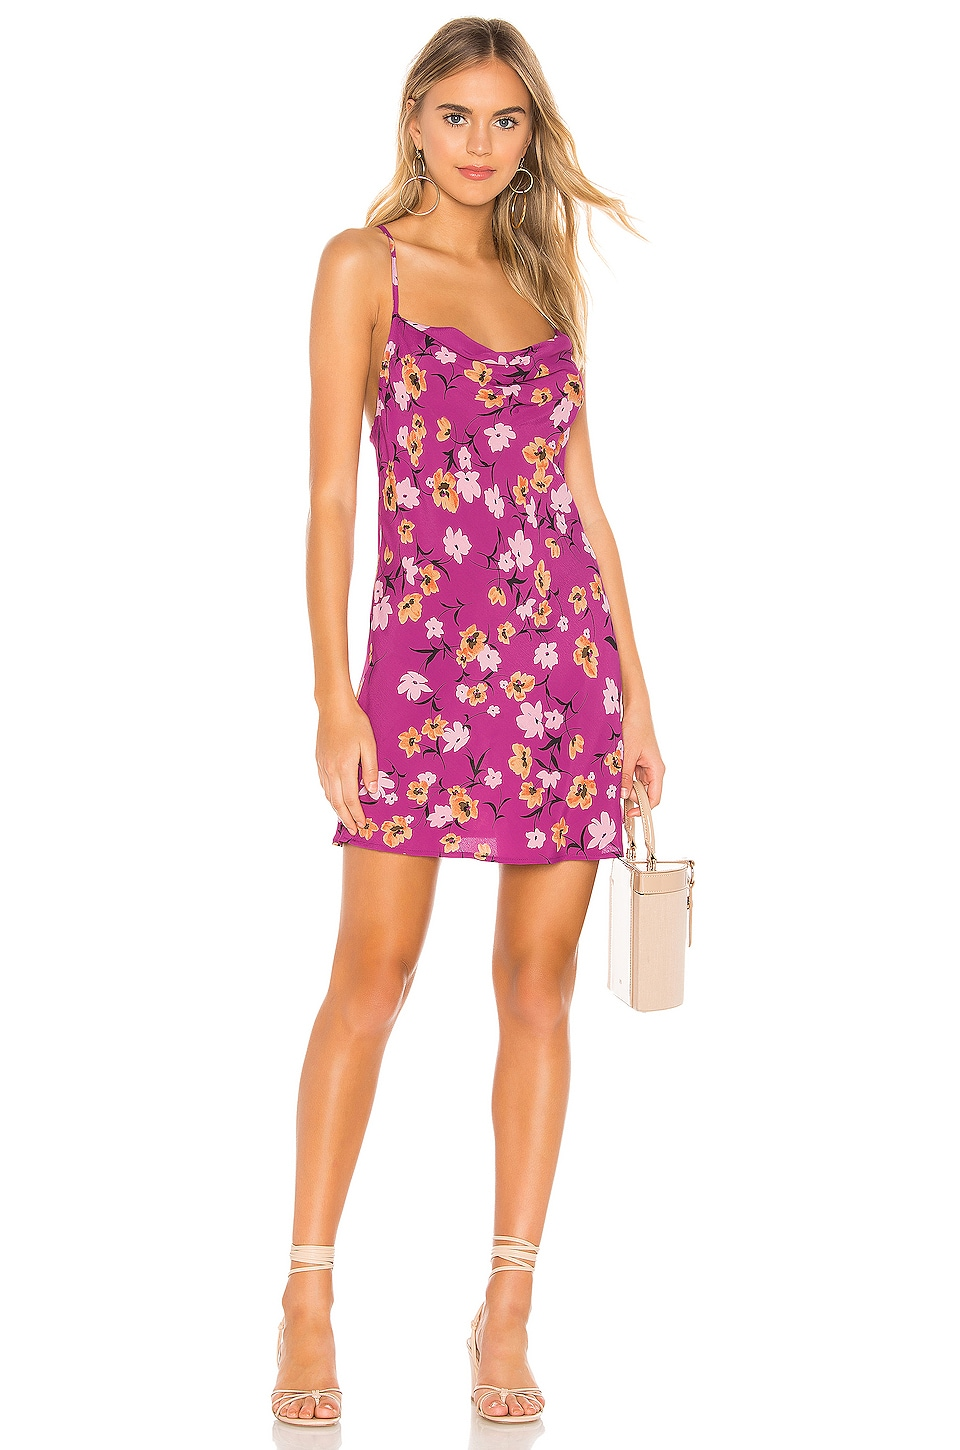 FLYNN SKYE Lynn Slip Dress in Berry Kiss